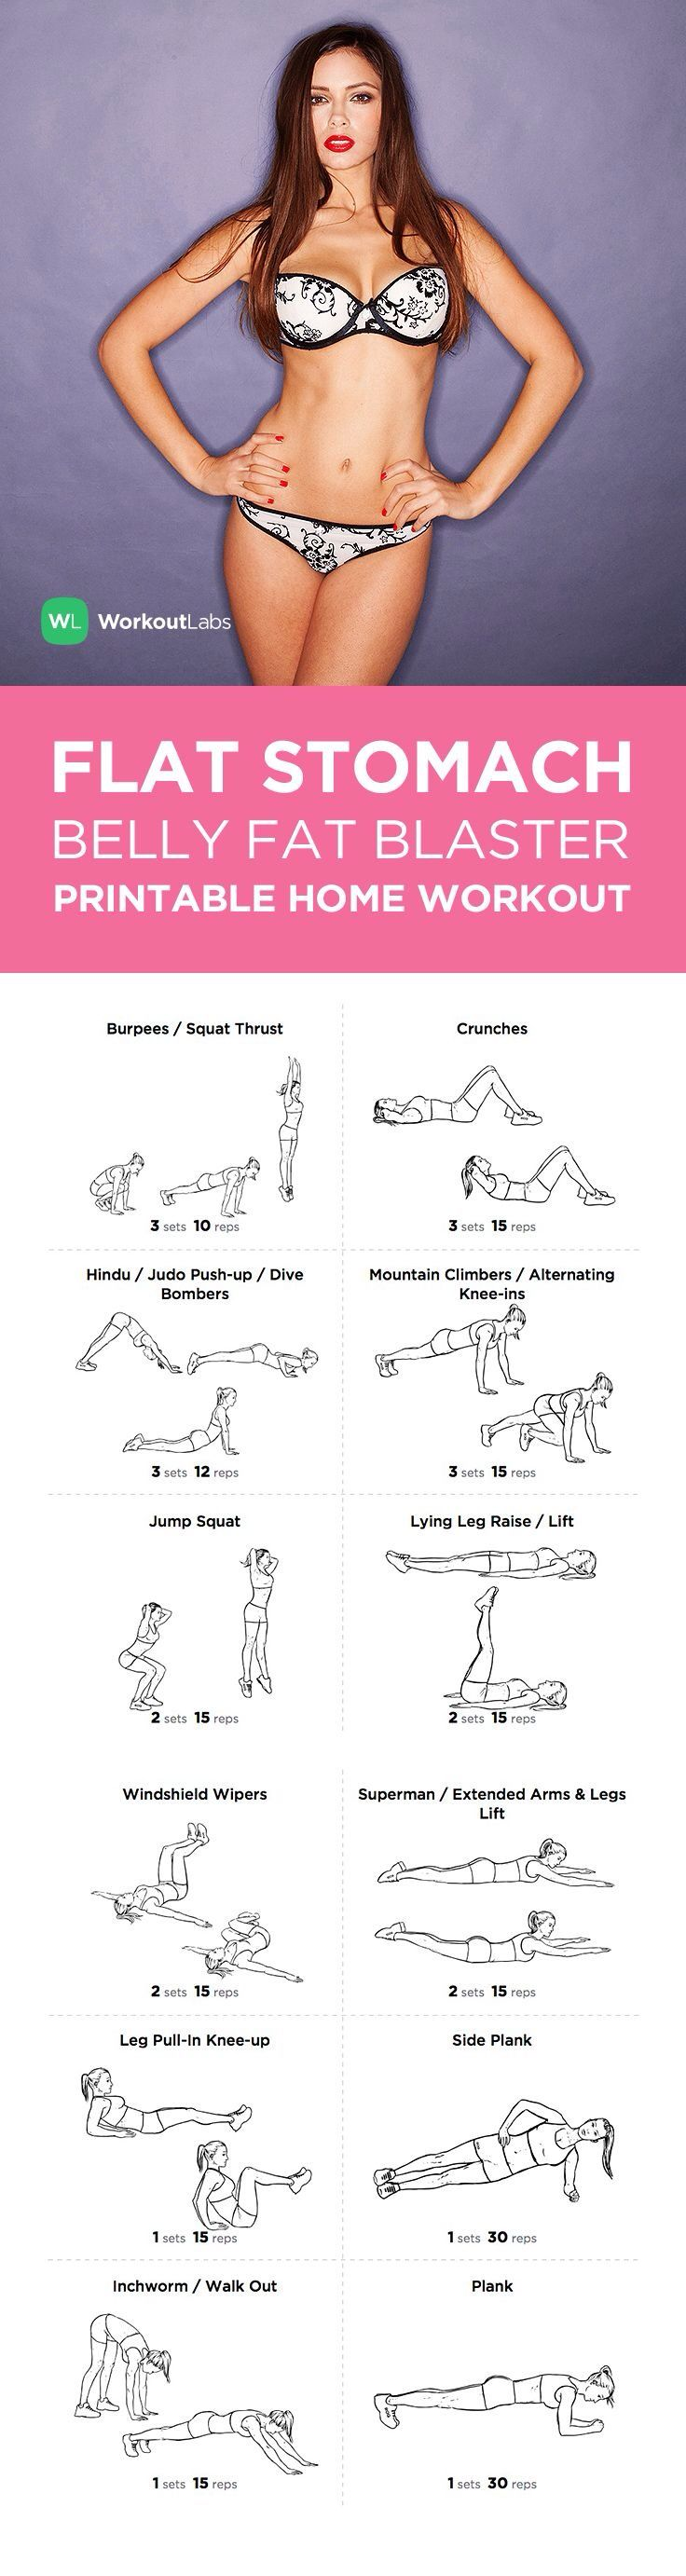 Work out | Diet and Exercise | Pinterest | Burn belly fat ...